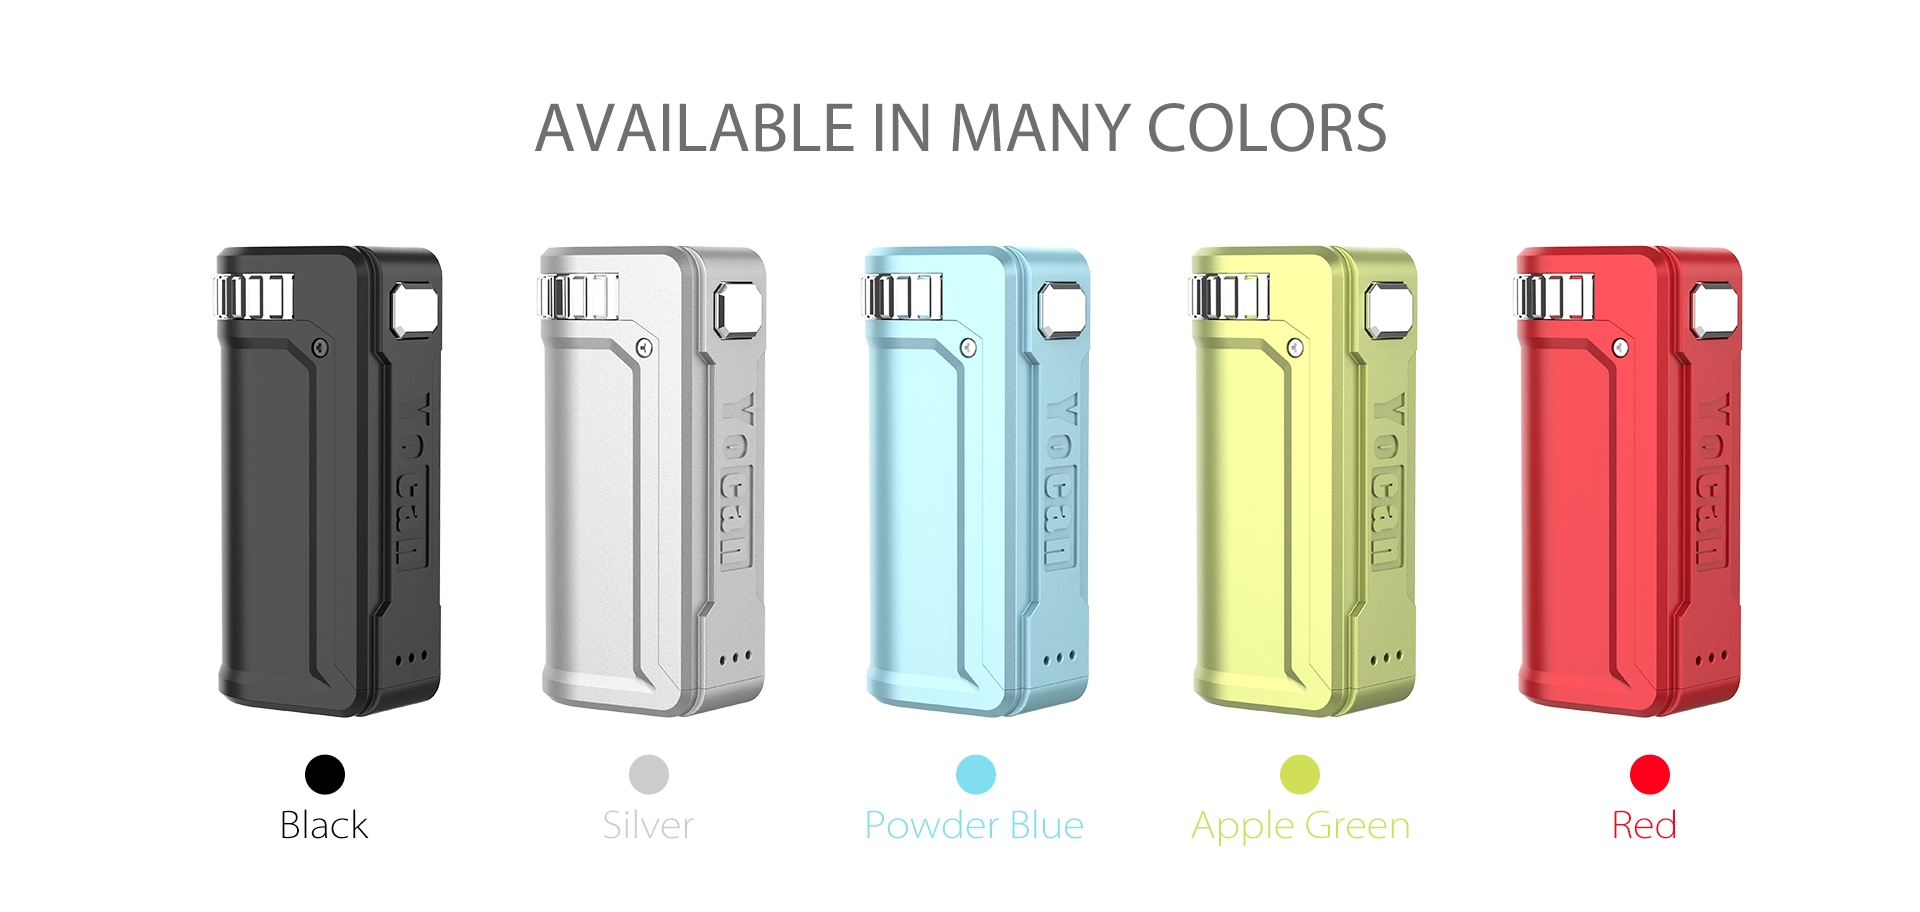 Yocan UNI S Box Mod available in five stylish colors.